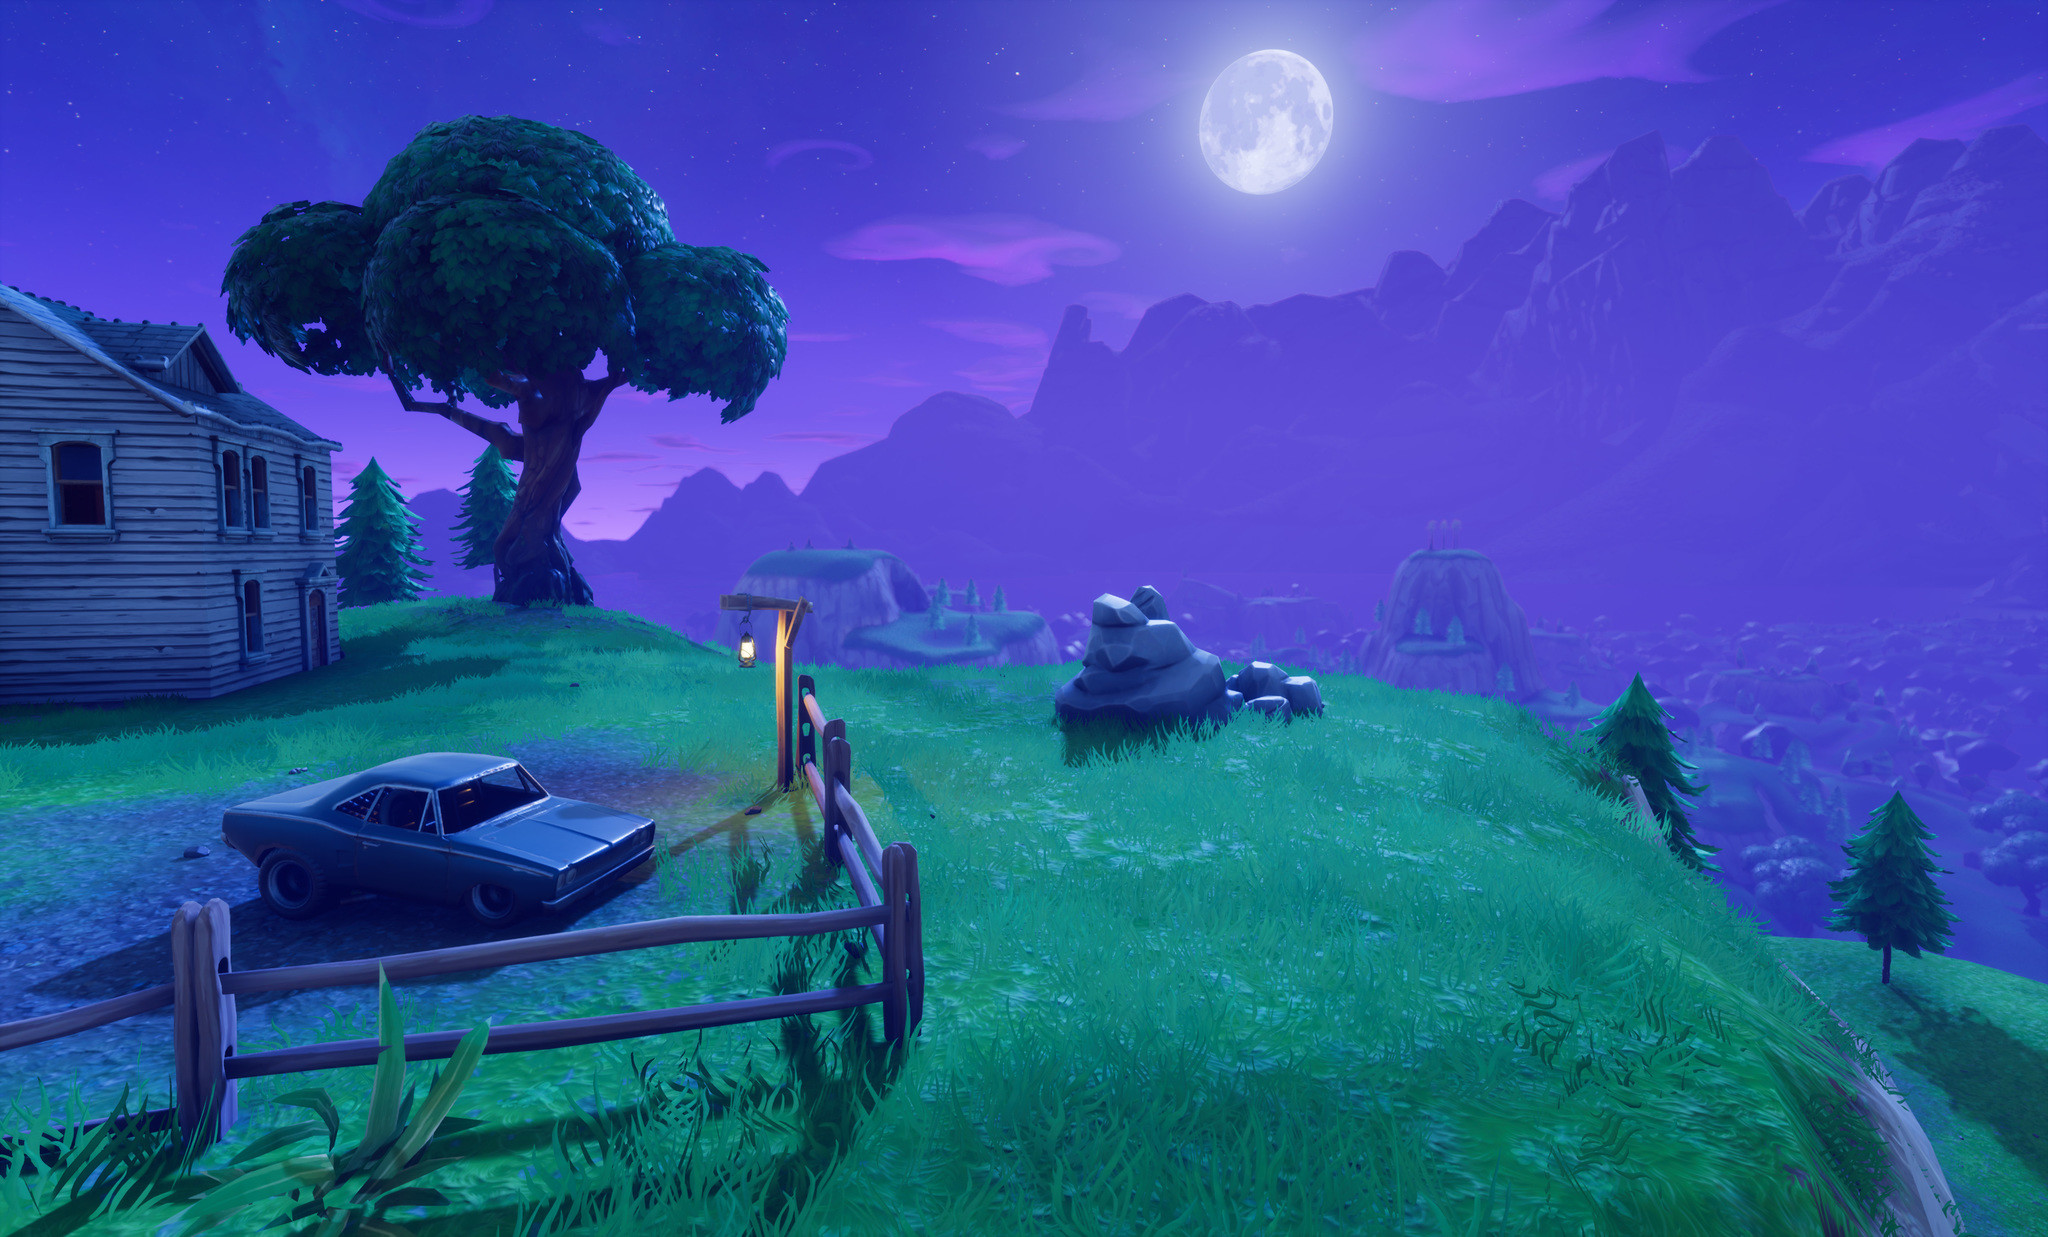 Epic's Fortnite will get a Battle Royale mode on September 26th